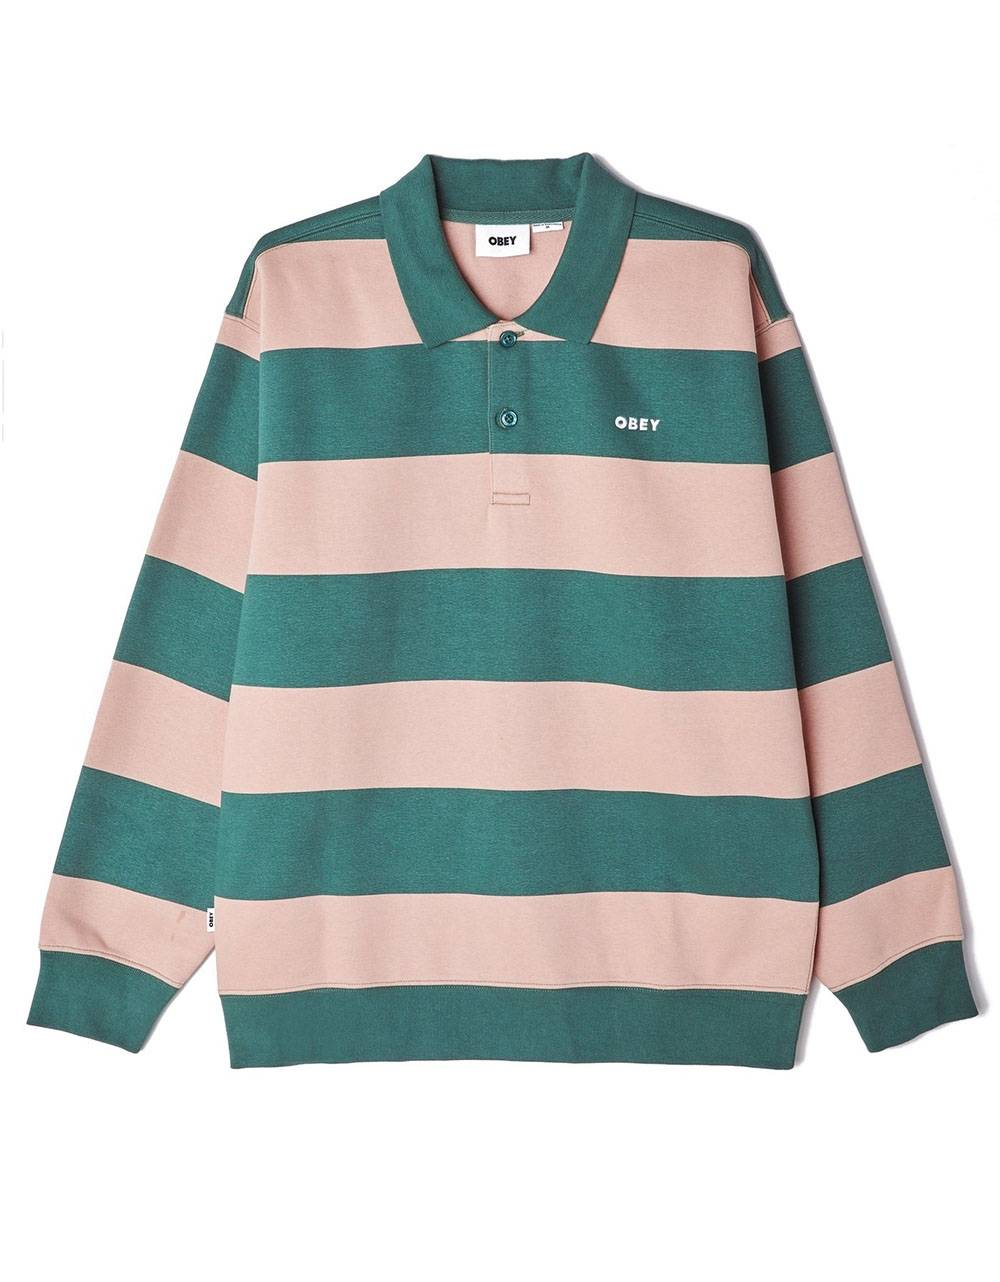 Obey ashmore polo fleece - green multi obey Sweater 94,26 €